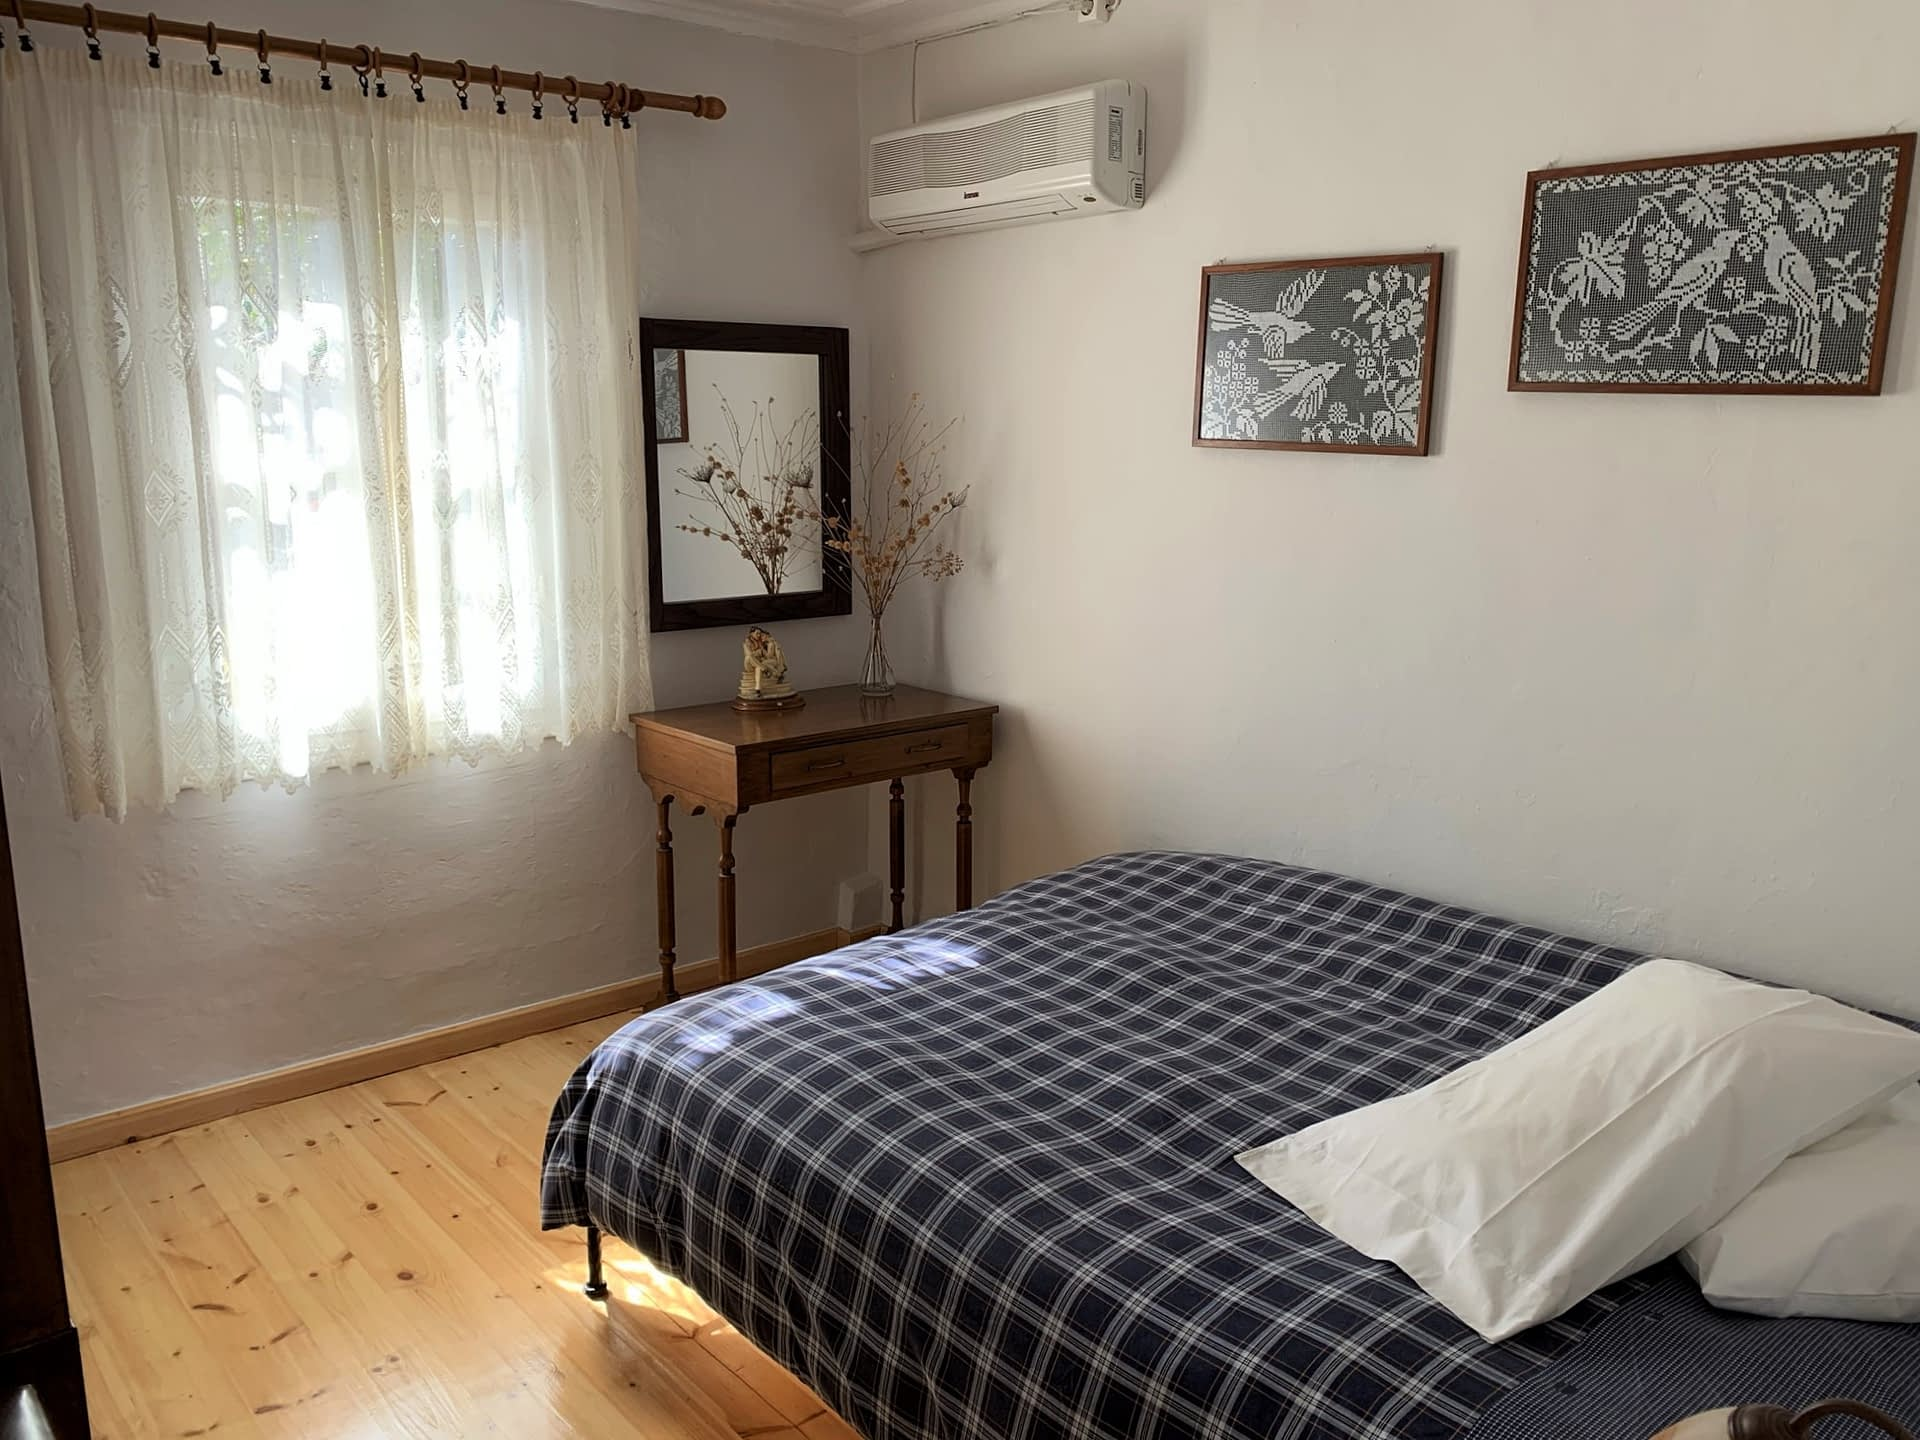 Bedroom of house to rent in Ithaca Greece, Kioni